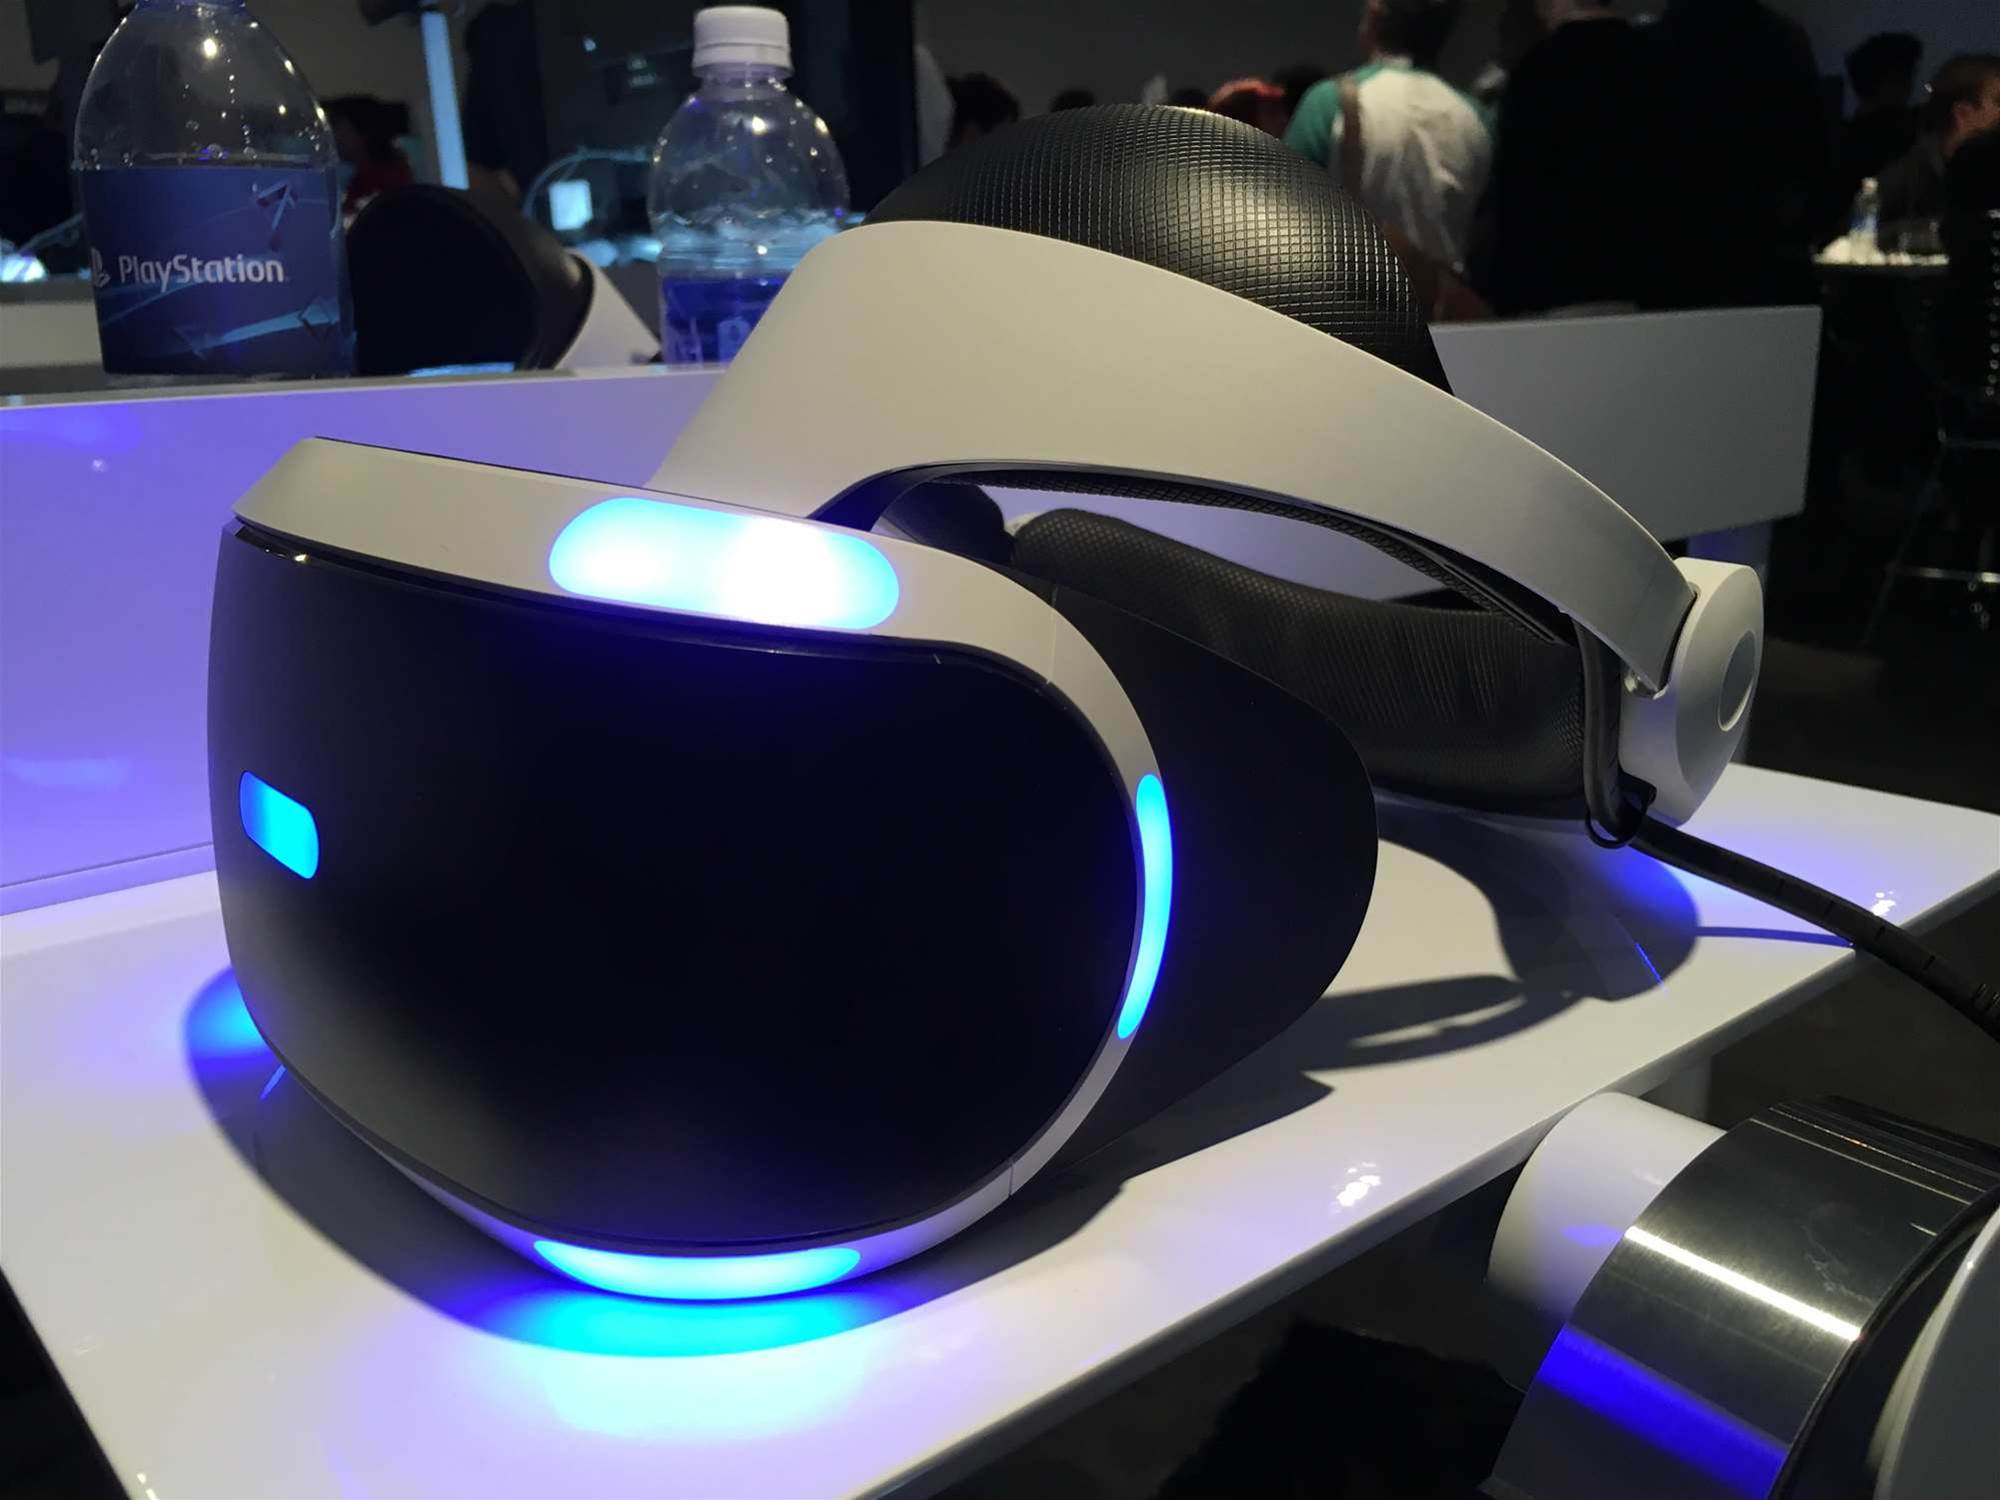 GDC 2016 And Virtual Reality: What To Expect